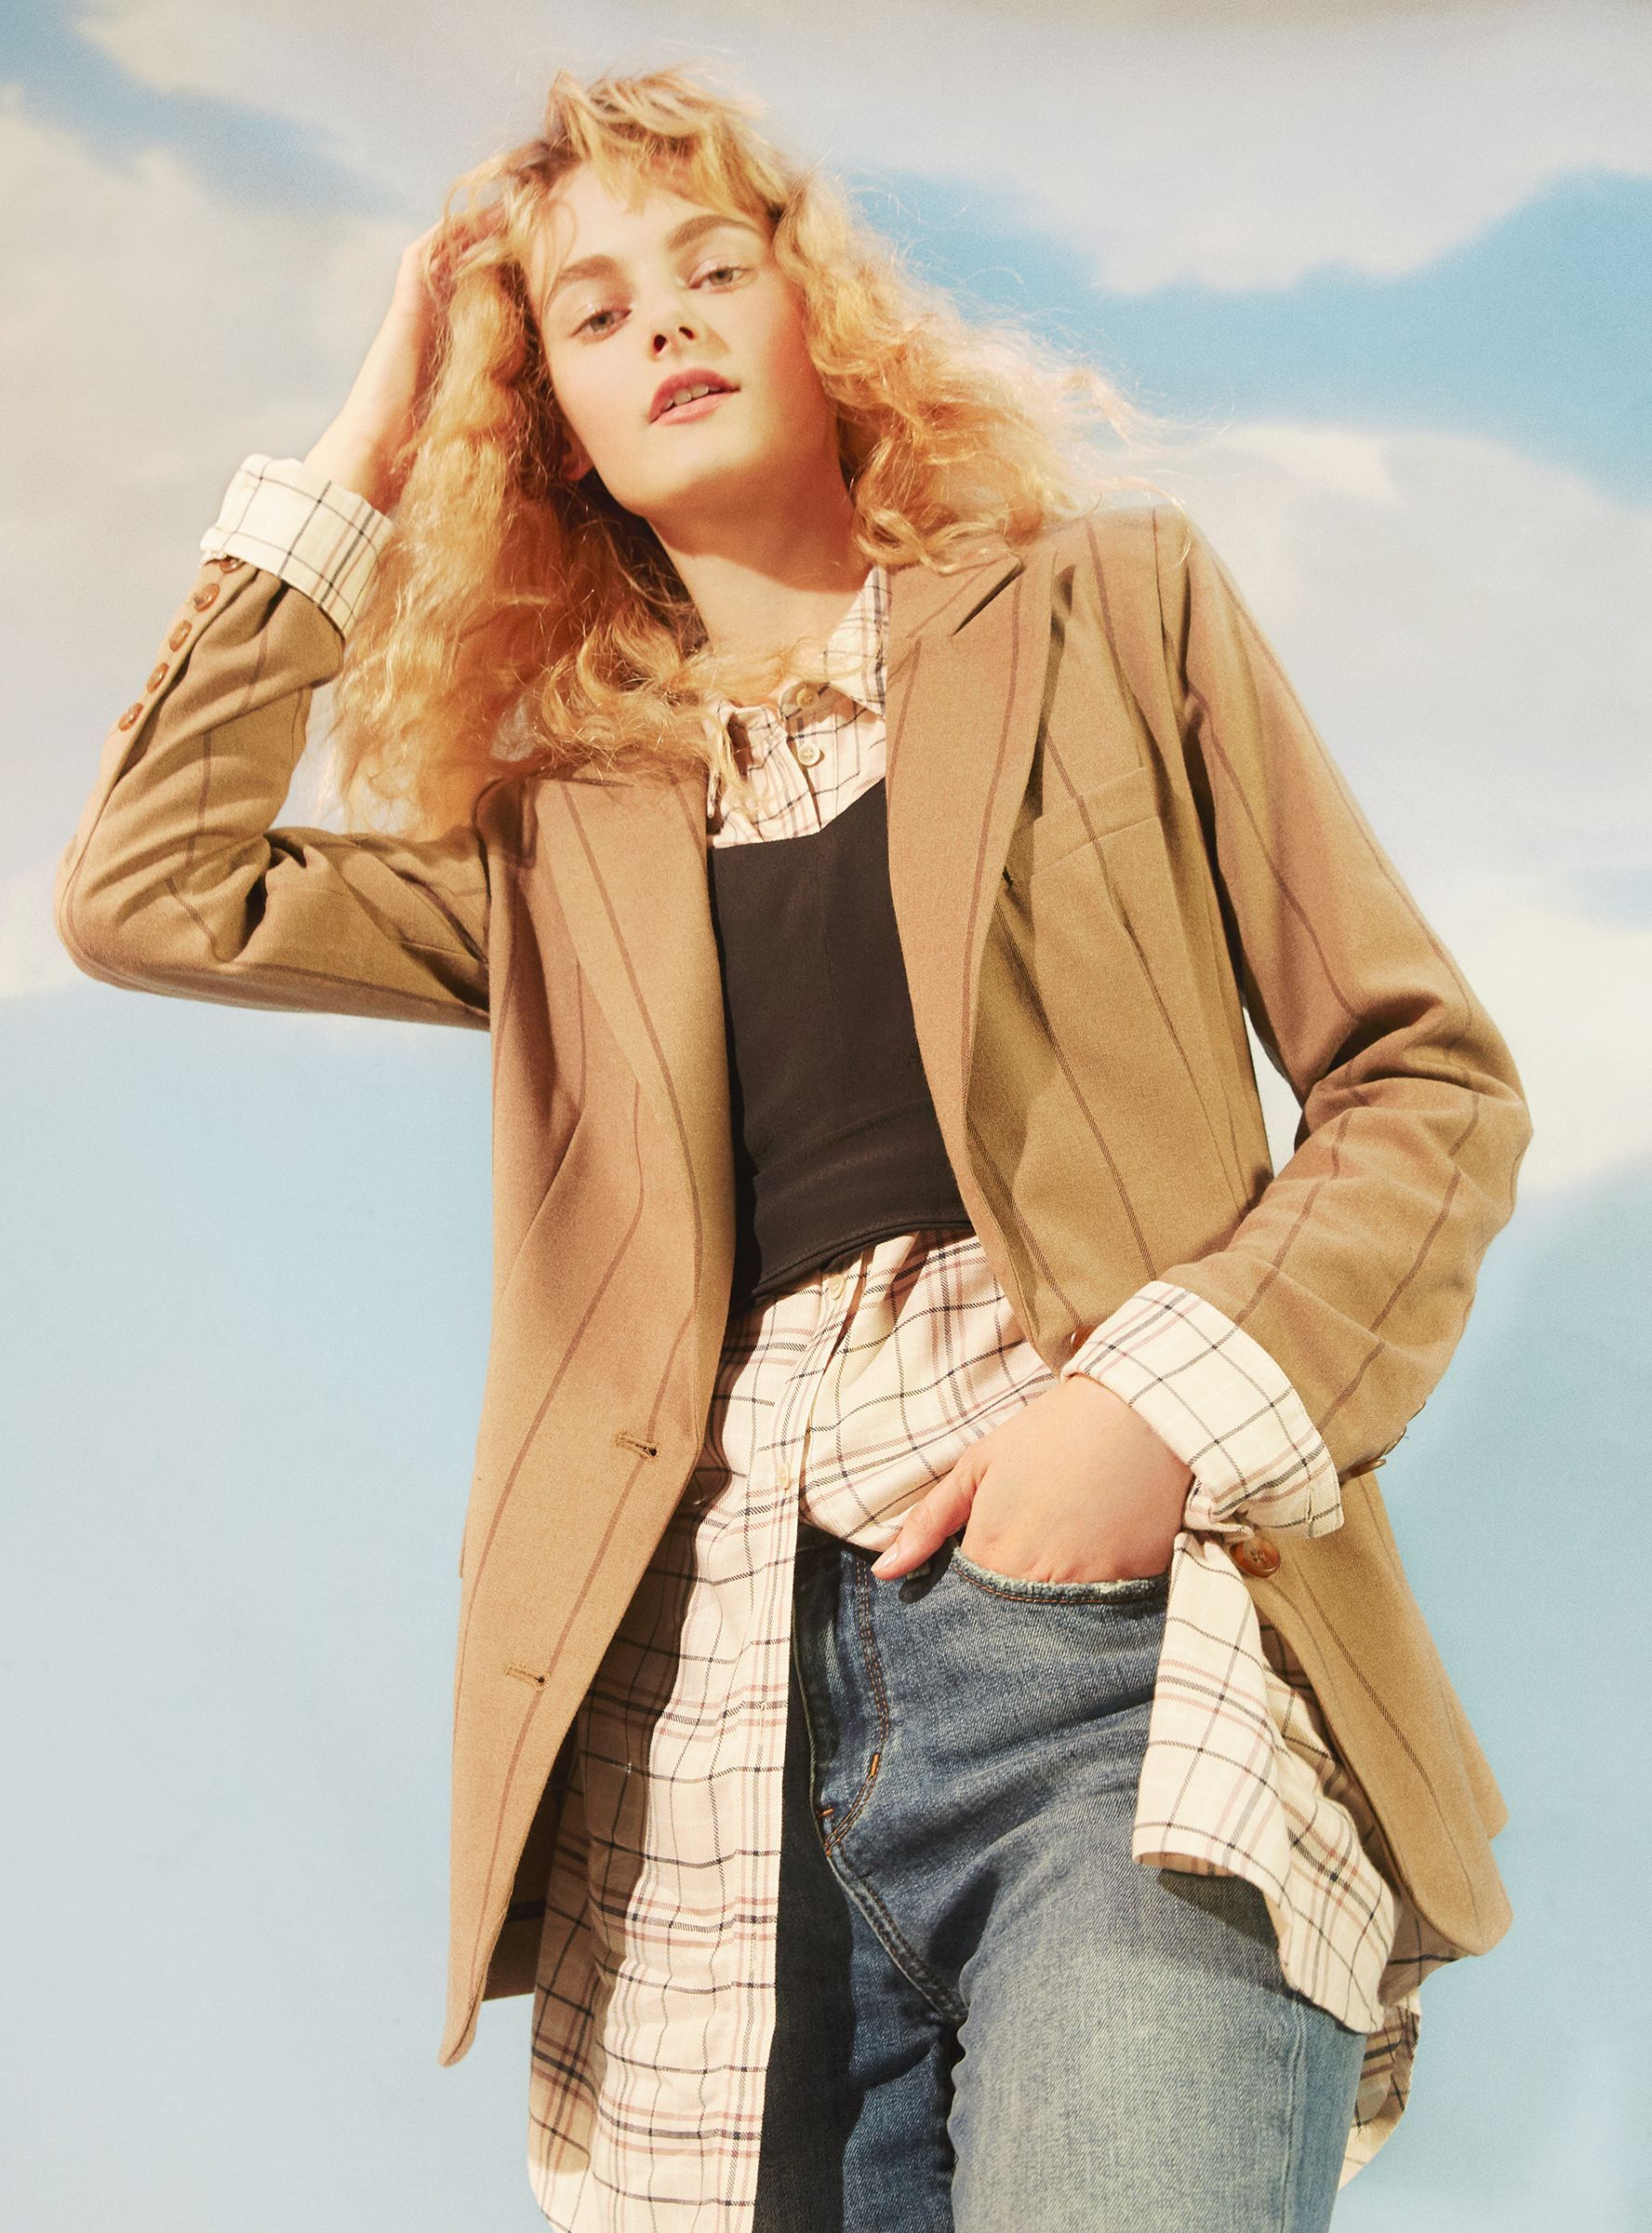 3 Unexpected Ways To Master Fall Layering is part of Layering Clothes Fall - These layered looks are all about mastering creative outfit strategies for the months to come